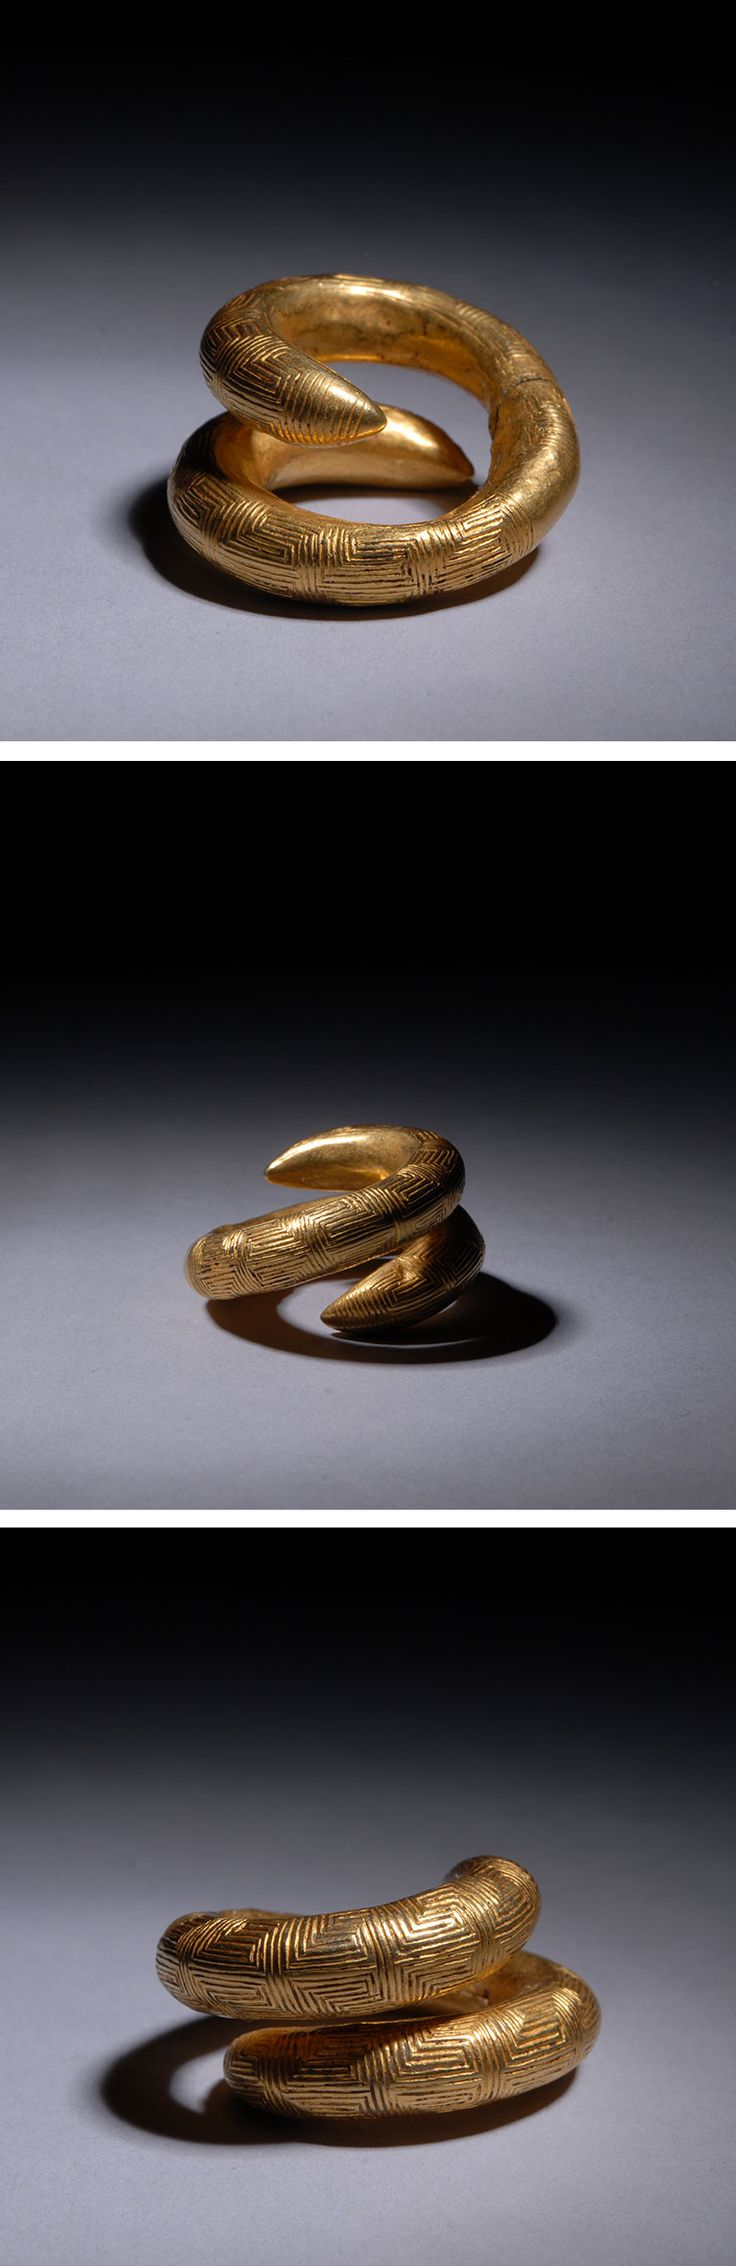 A beautiful ancient Greek gold spiral hair ornament dating to approximately 300 B.C.